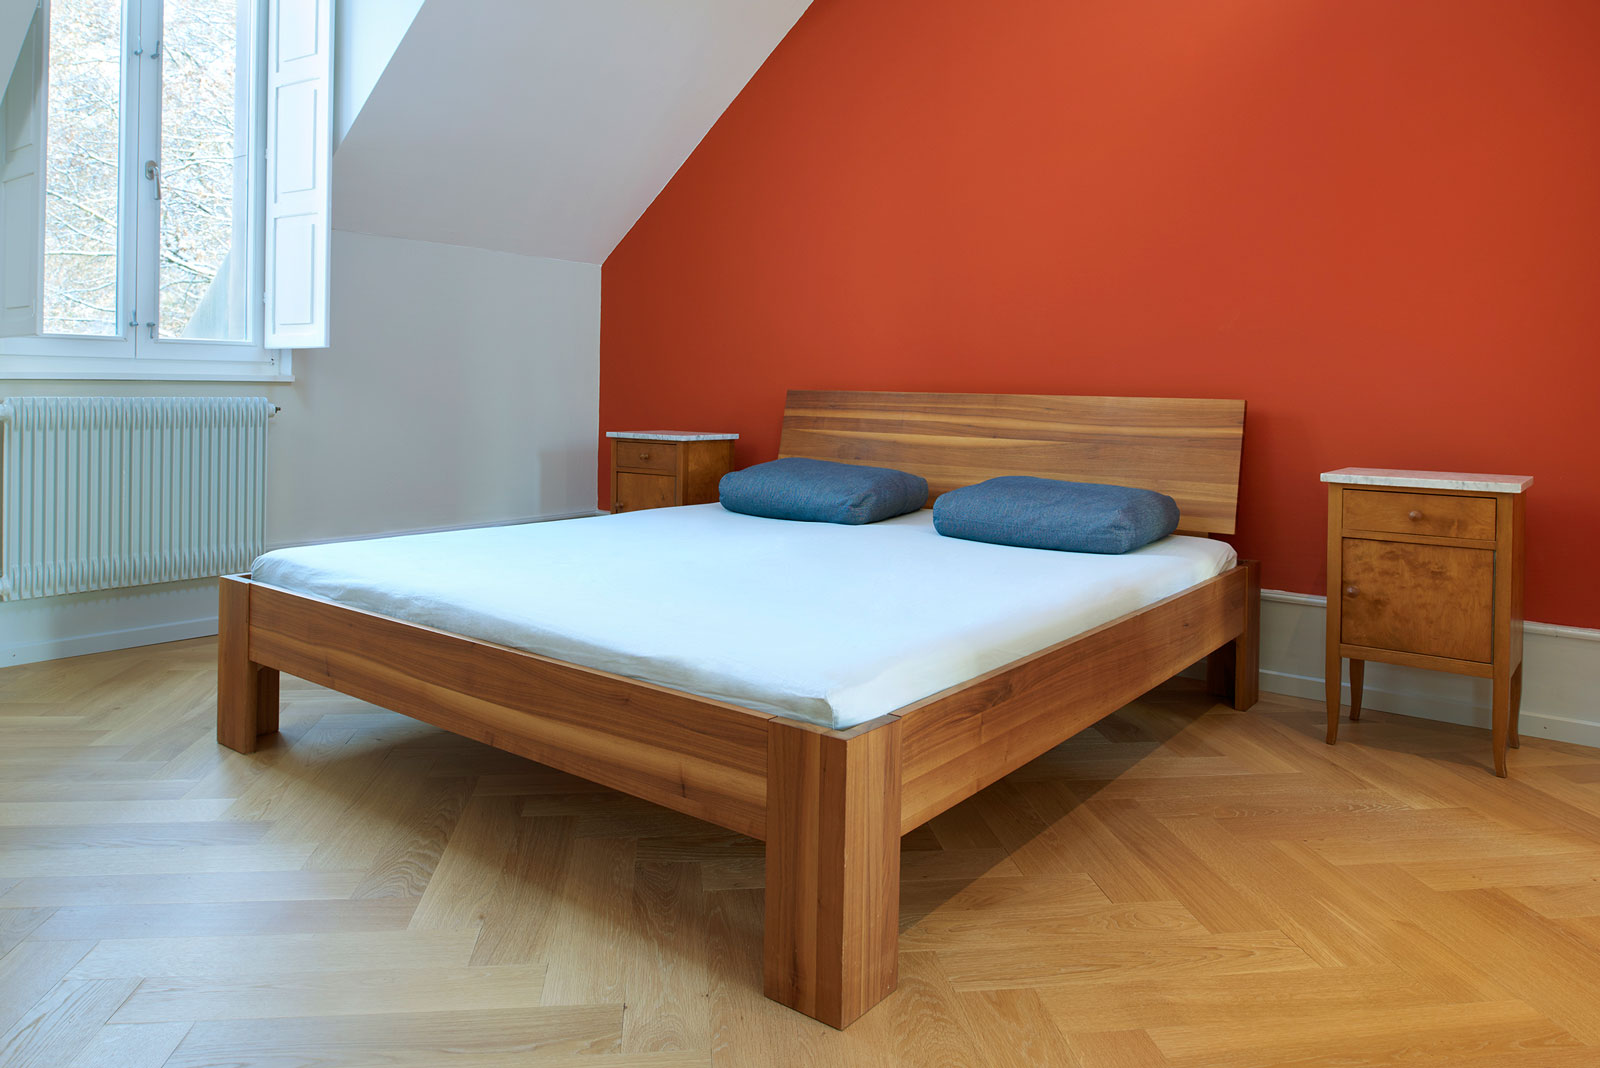 Bed in solid walnut; Design carpenter, photo Alain Bucher